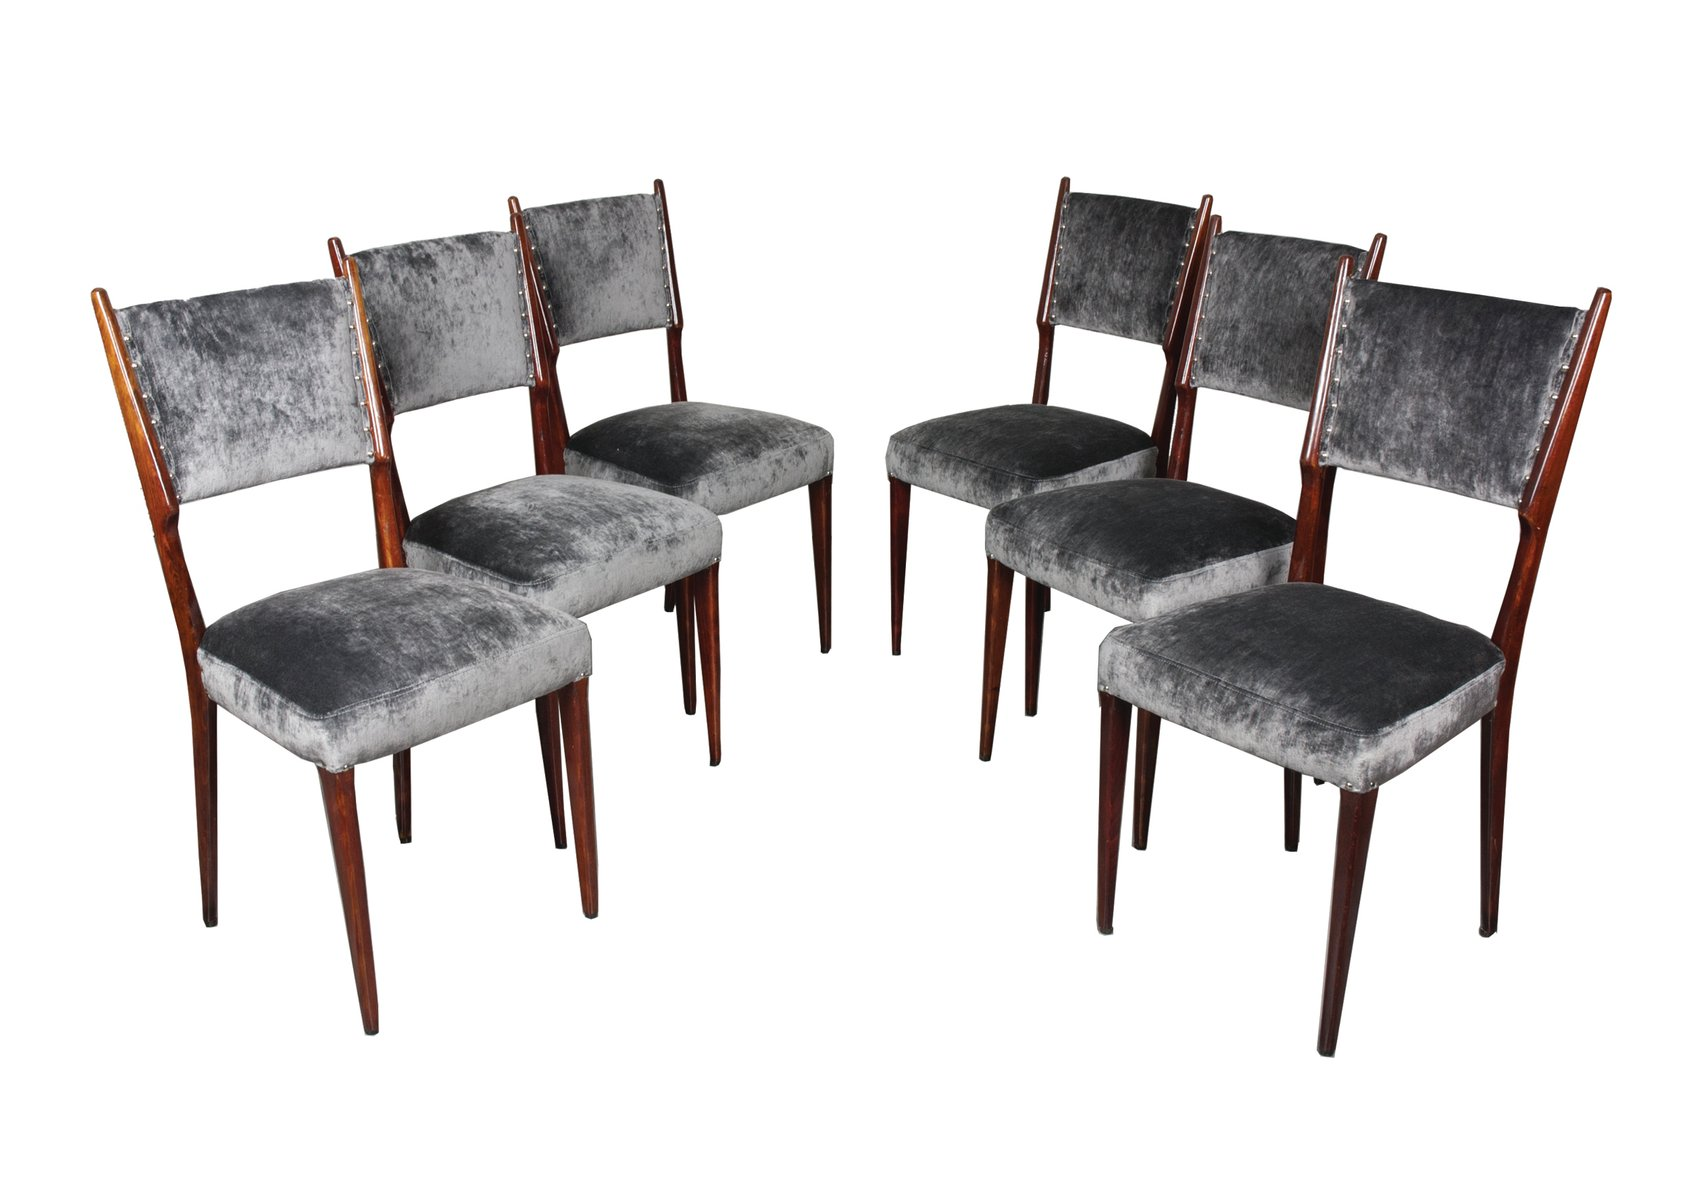 vintage esszimmerst hle von paolo buffa 6er set bei pamono kaufen. Black Bedroom Furniture Sets. Home Design Ideas